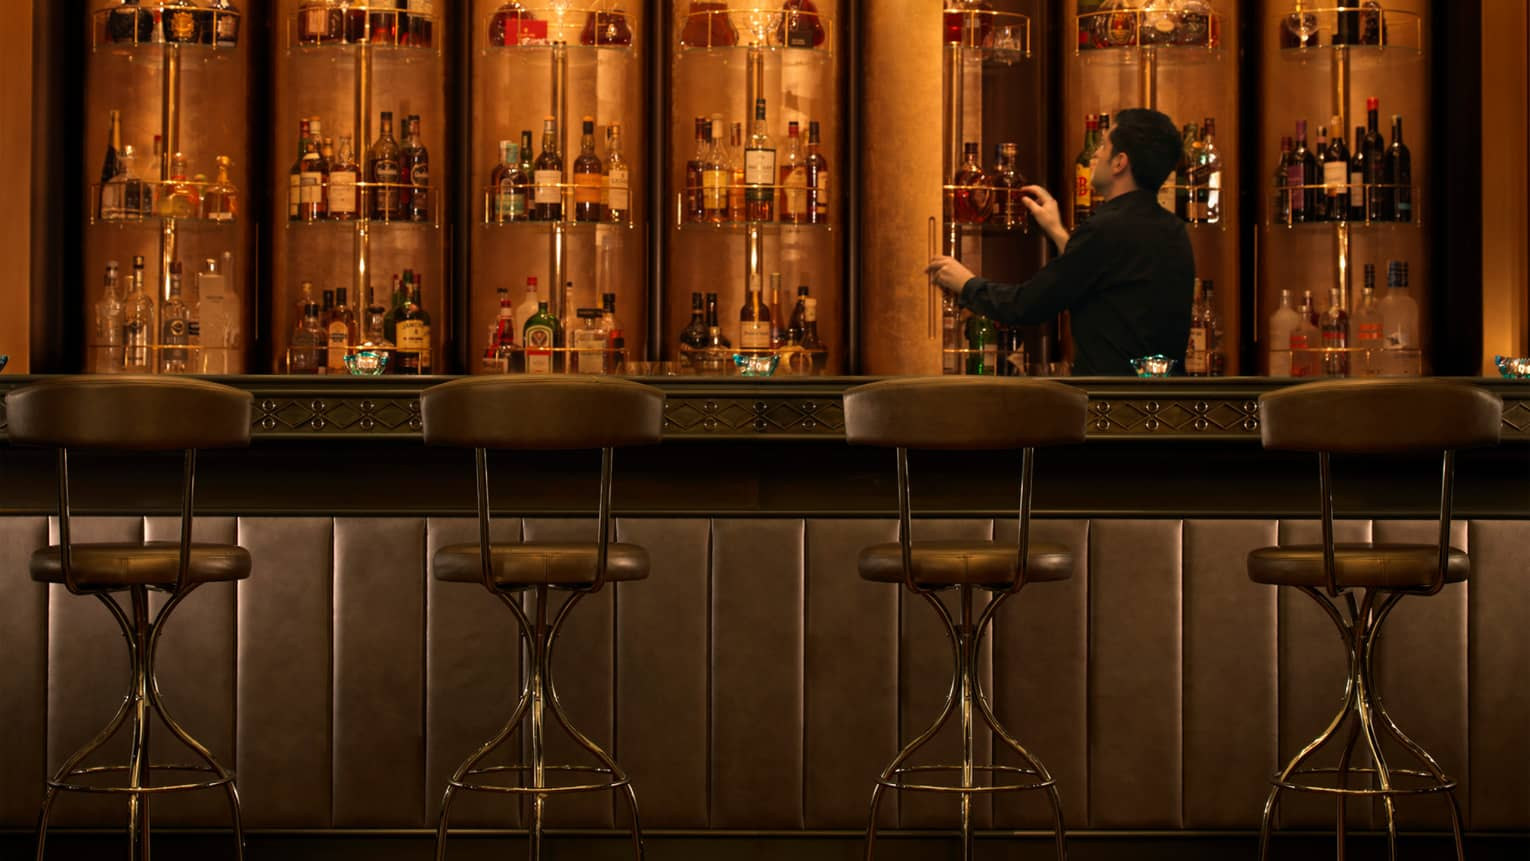 Bentleys dimly-lit lounge, four stools at padded leather bar where bartender looks at racks of bottles on wall